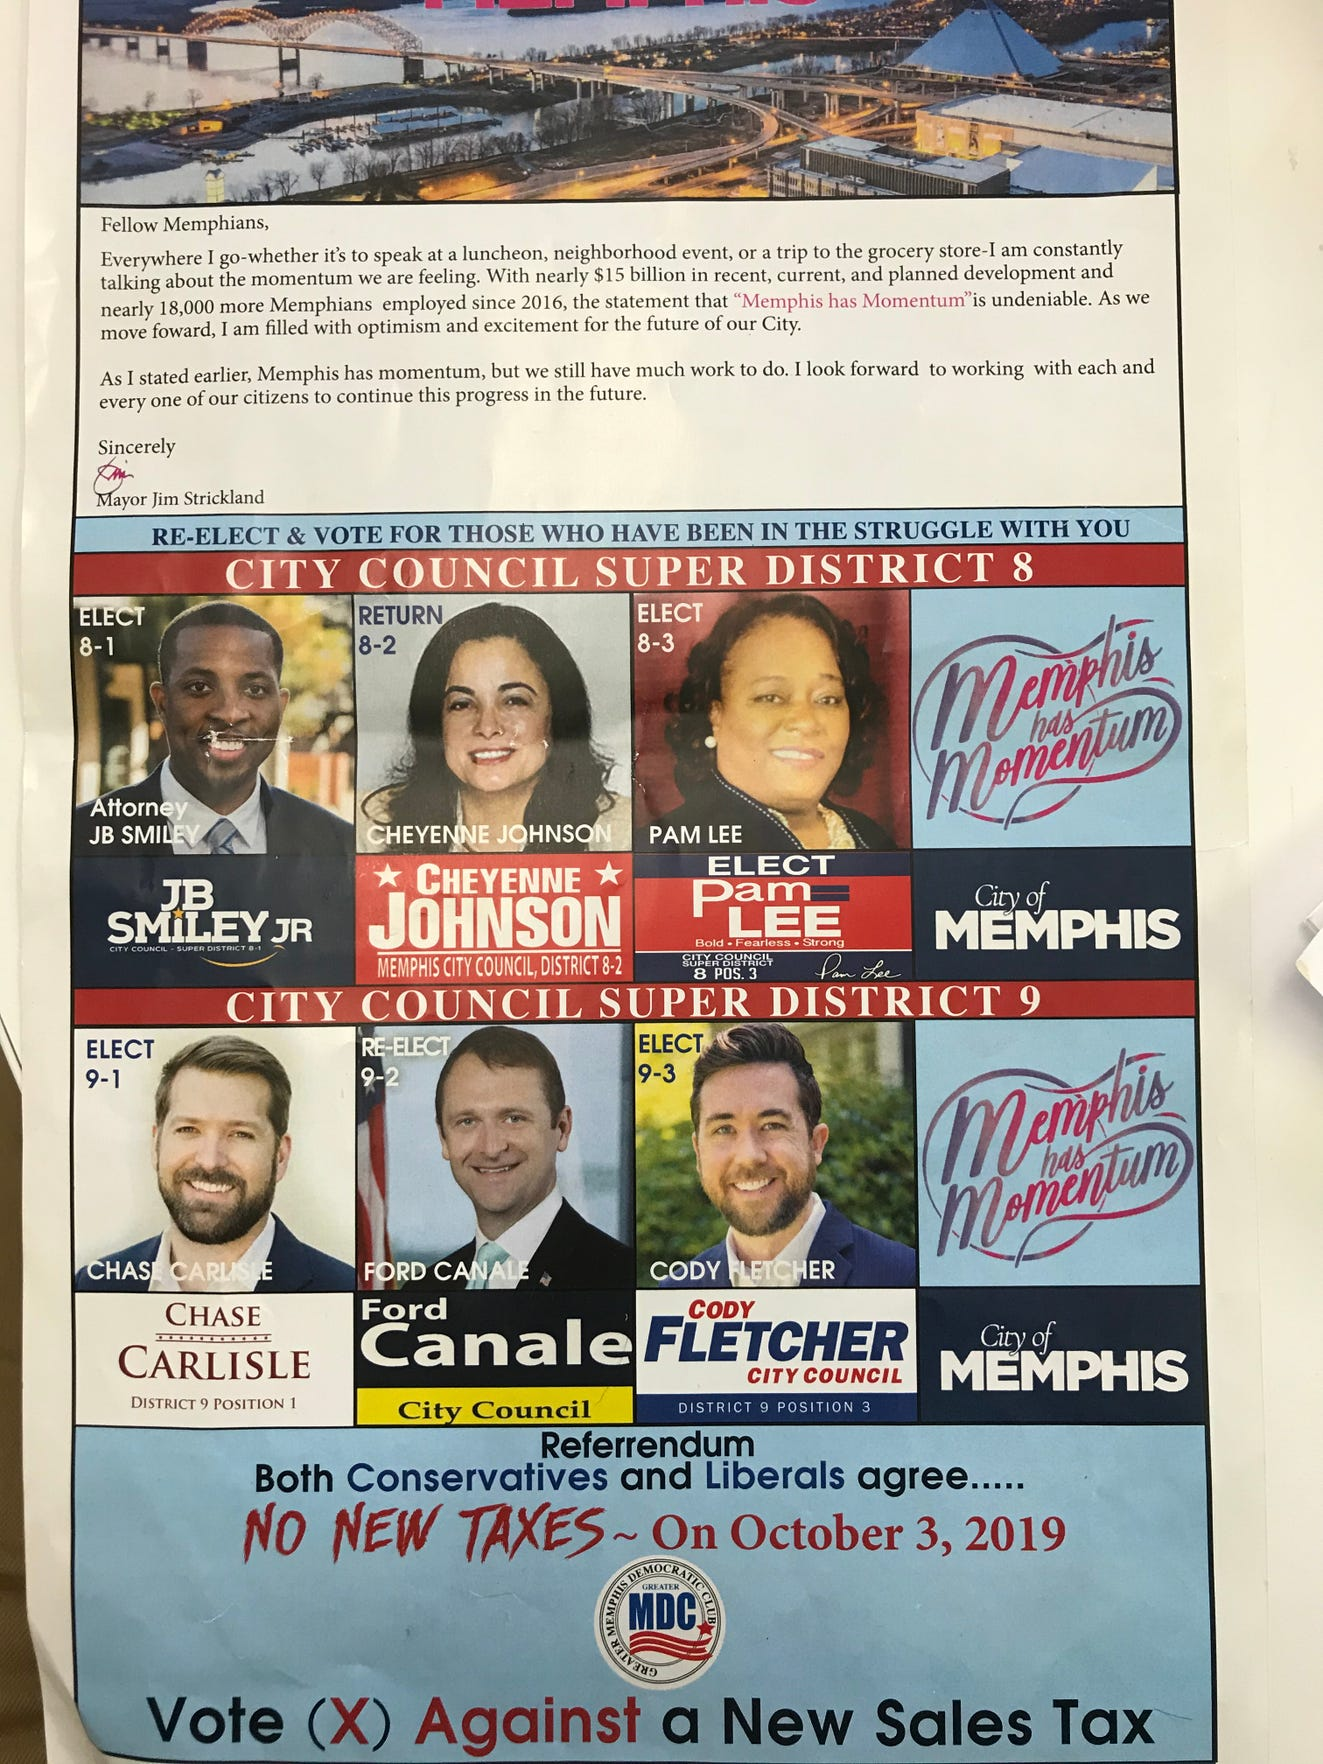 Caissa placed at least two clients on Gregory Grant's ballot, according to them, J. Ford Canale and Worth Morgan. Caissa and an associated entity have received at least $499,000 in campaign funds from Canale, Morgan and two other candidates who appear on the ballot — Chase Carlisle and Cody Fletcher.